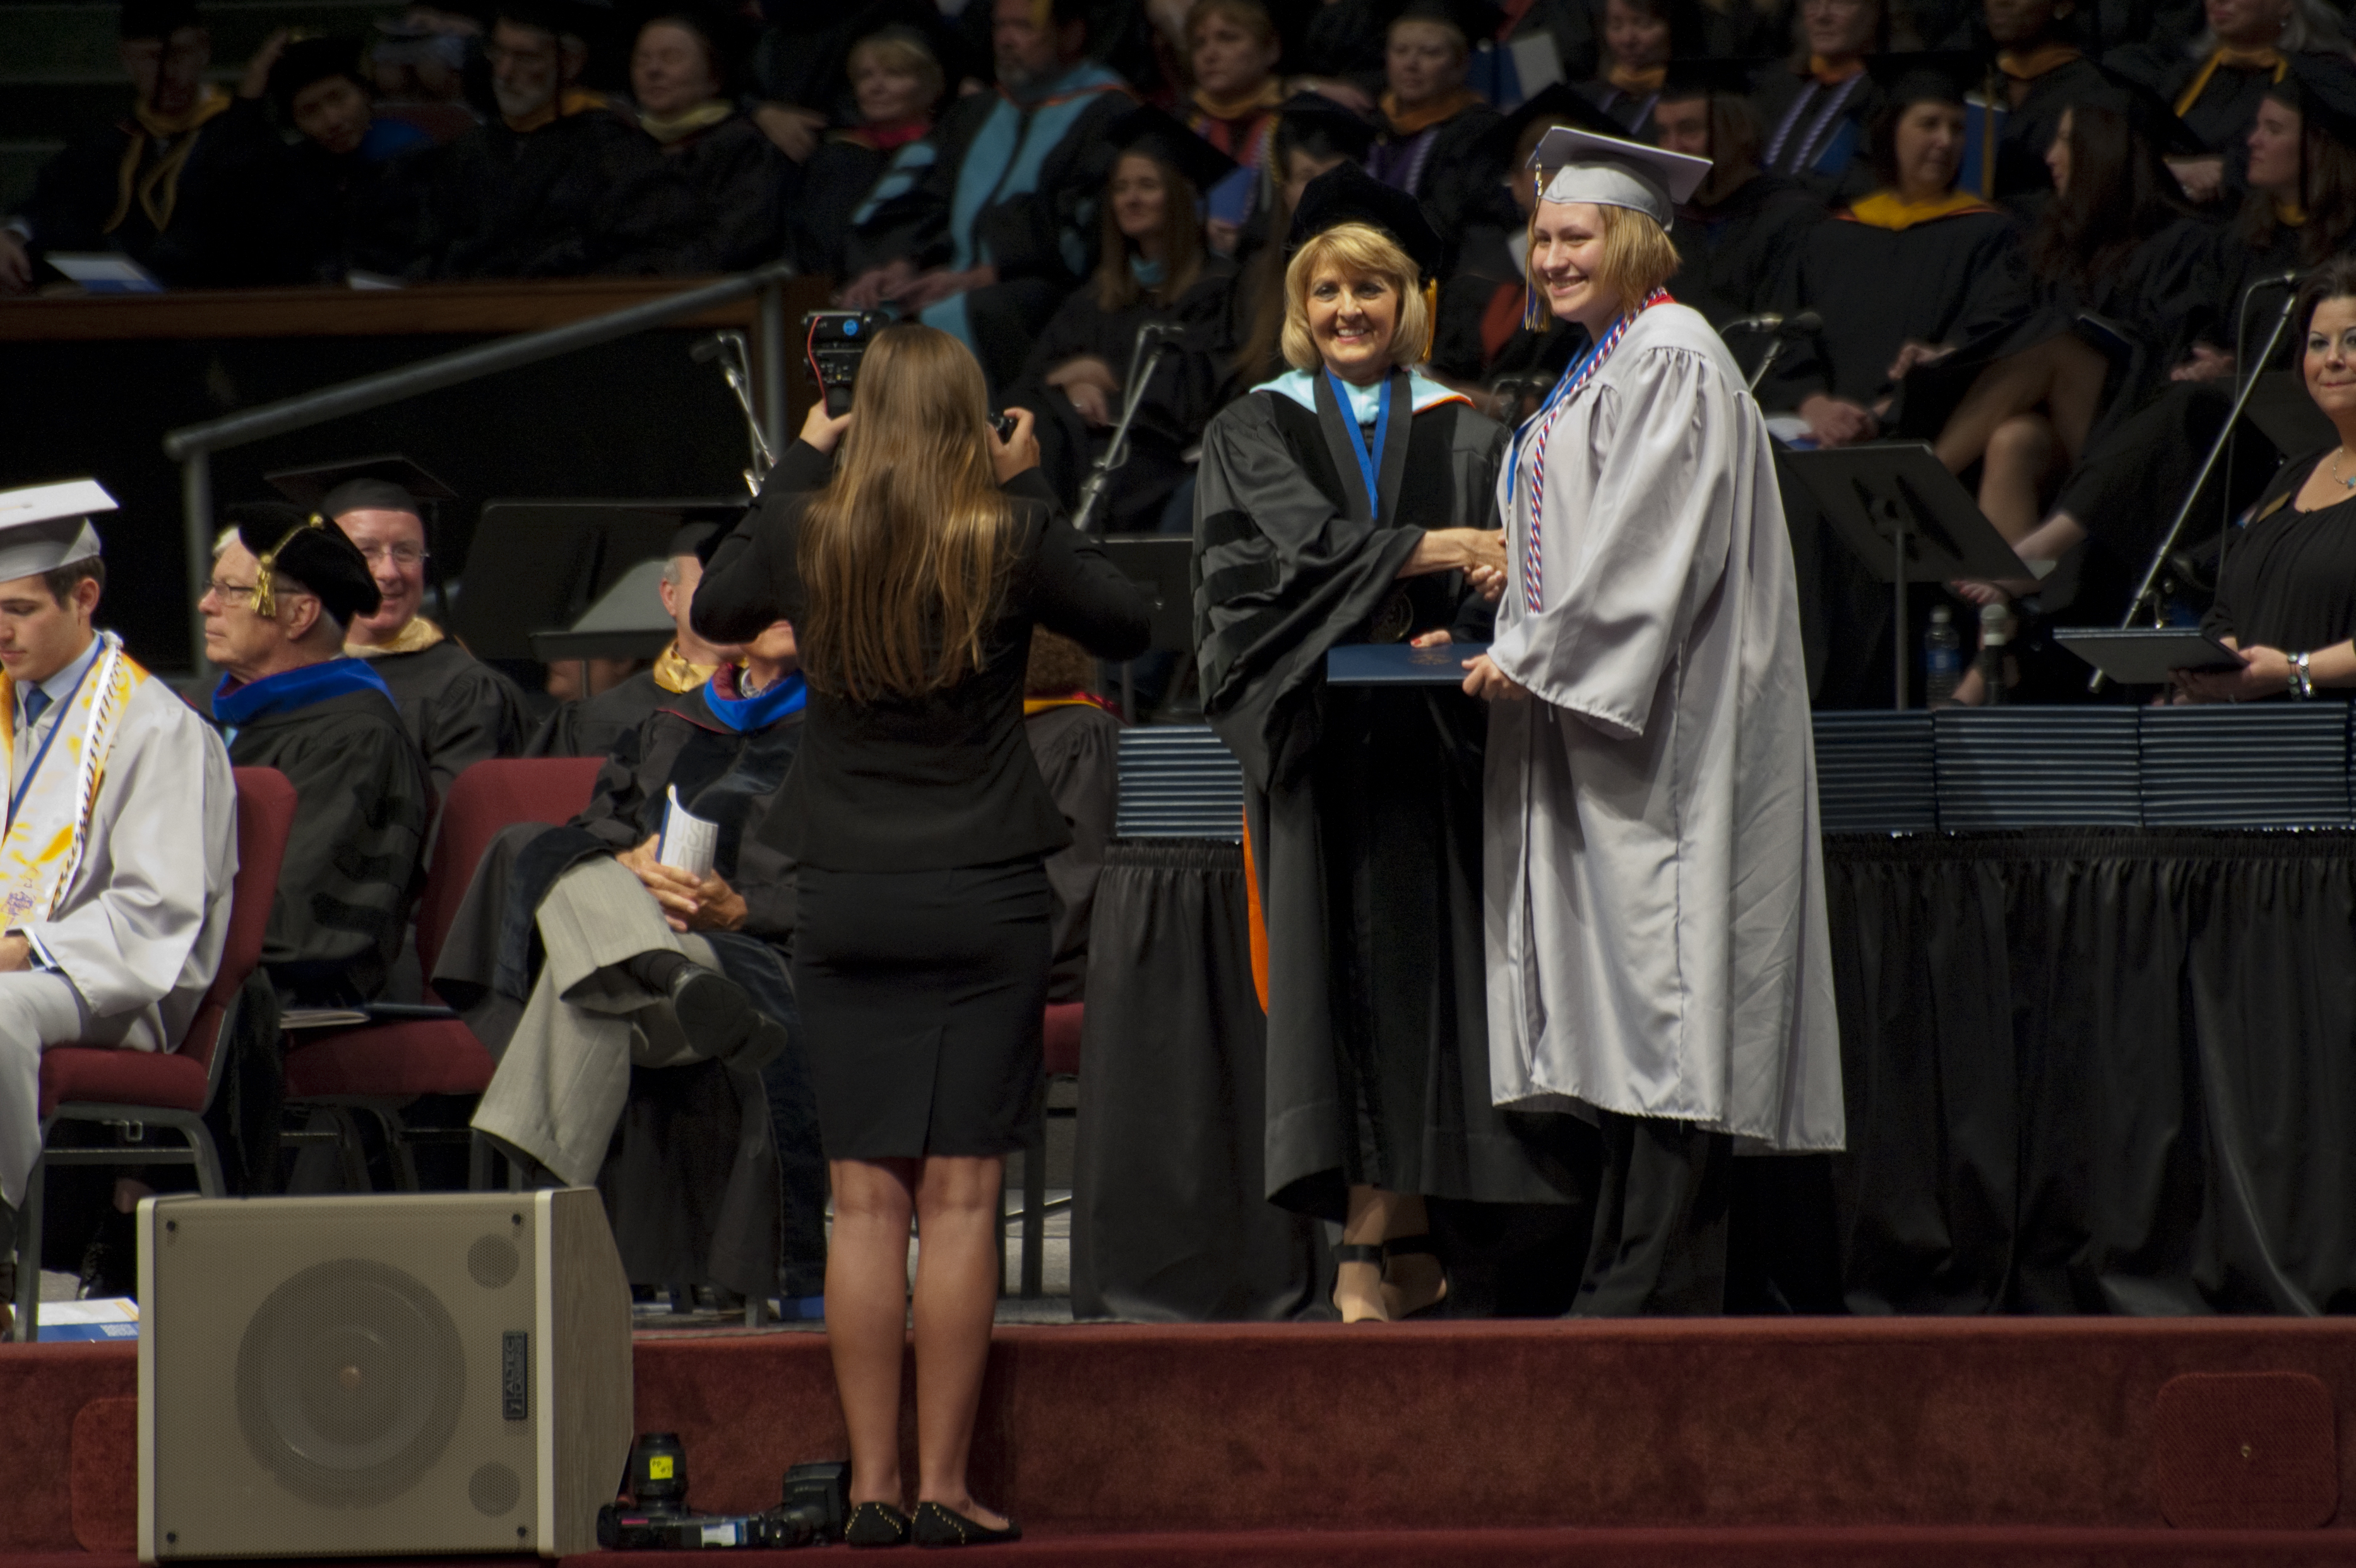 President Webb conferring degree at graduation